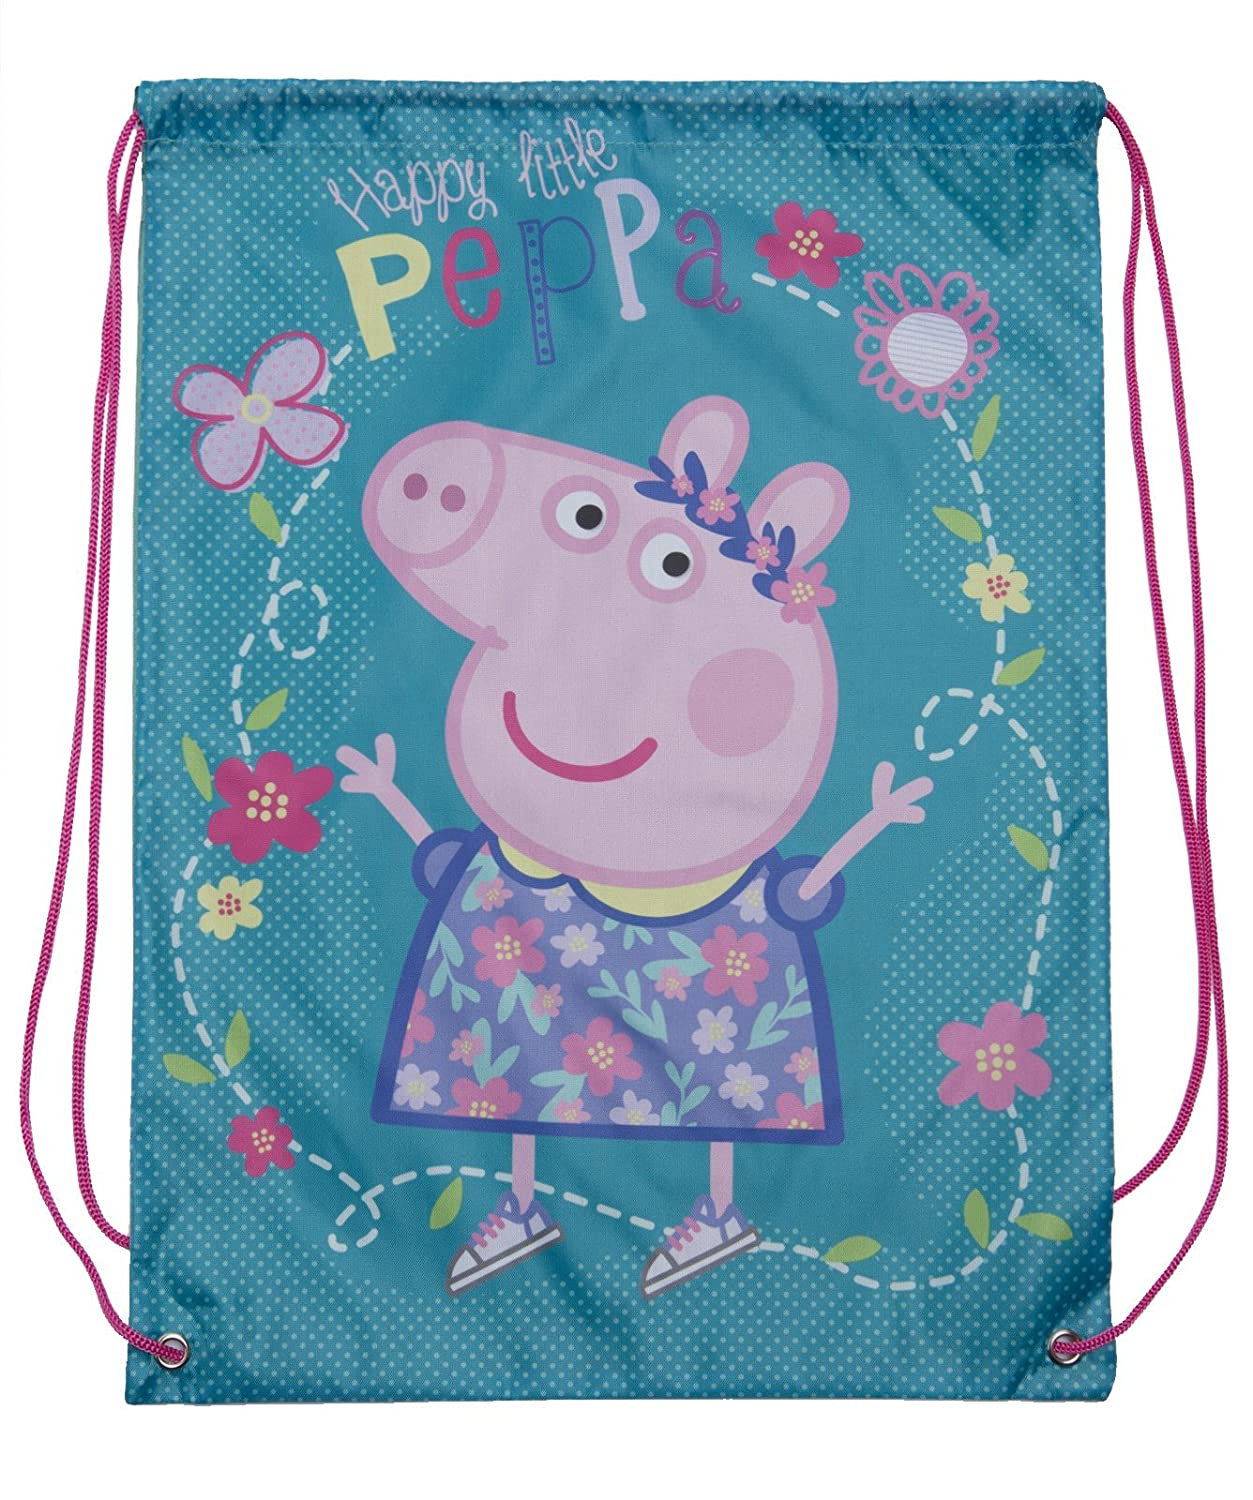 Peppa Pig Drawstring Bag 2 Bags Pack Children Travel Gym Backpack Kids Gift Sack